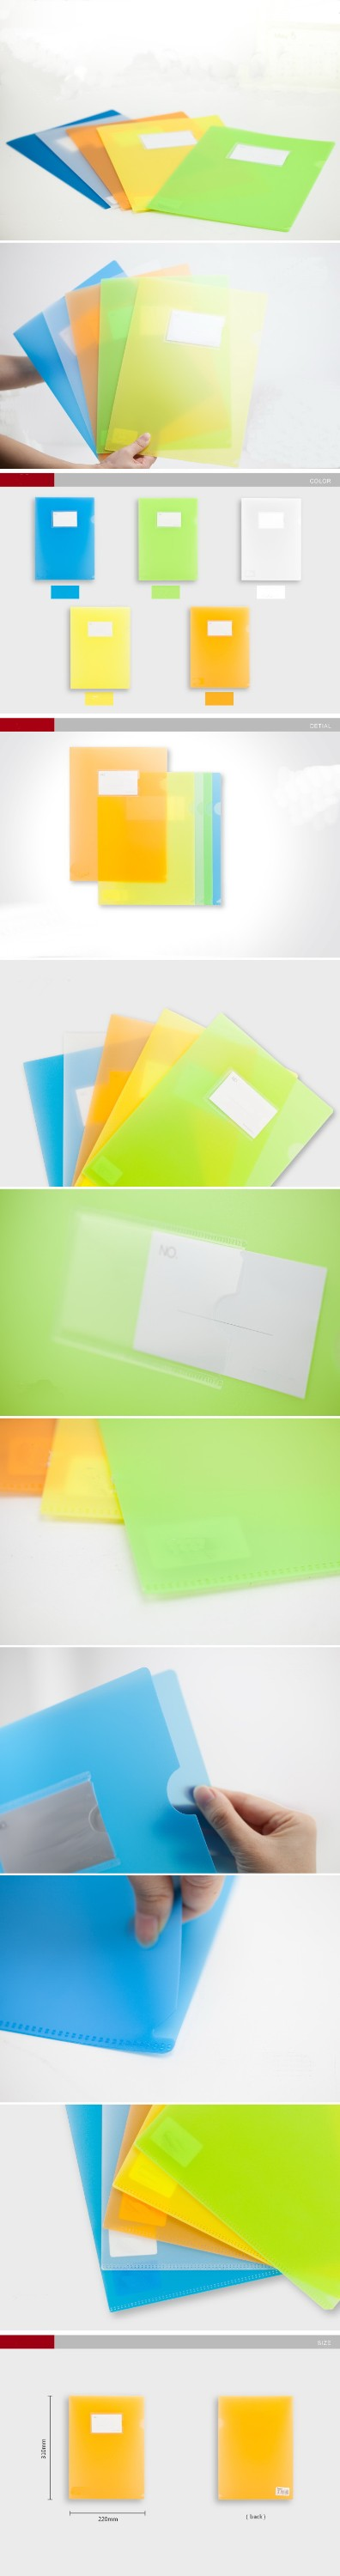 Colorful A4 Size Transparent Plastic L Shape Document File Folder ...